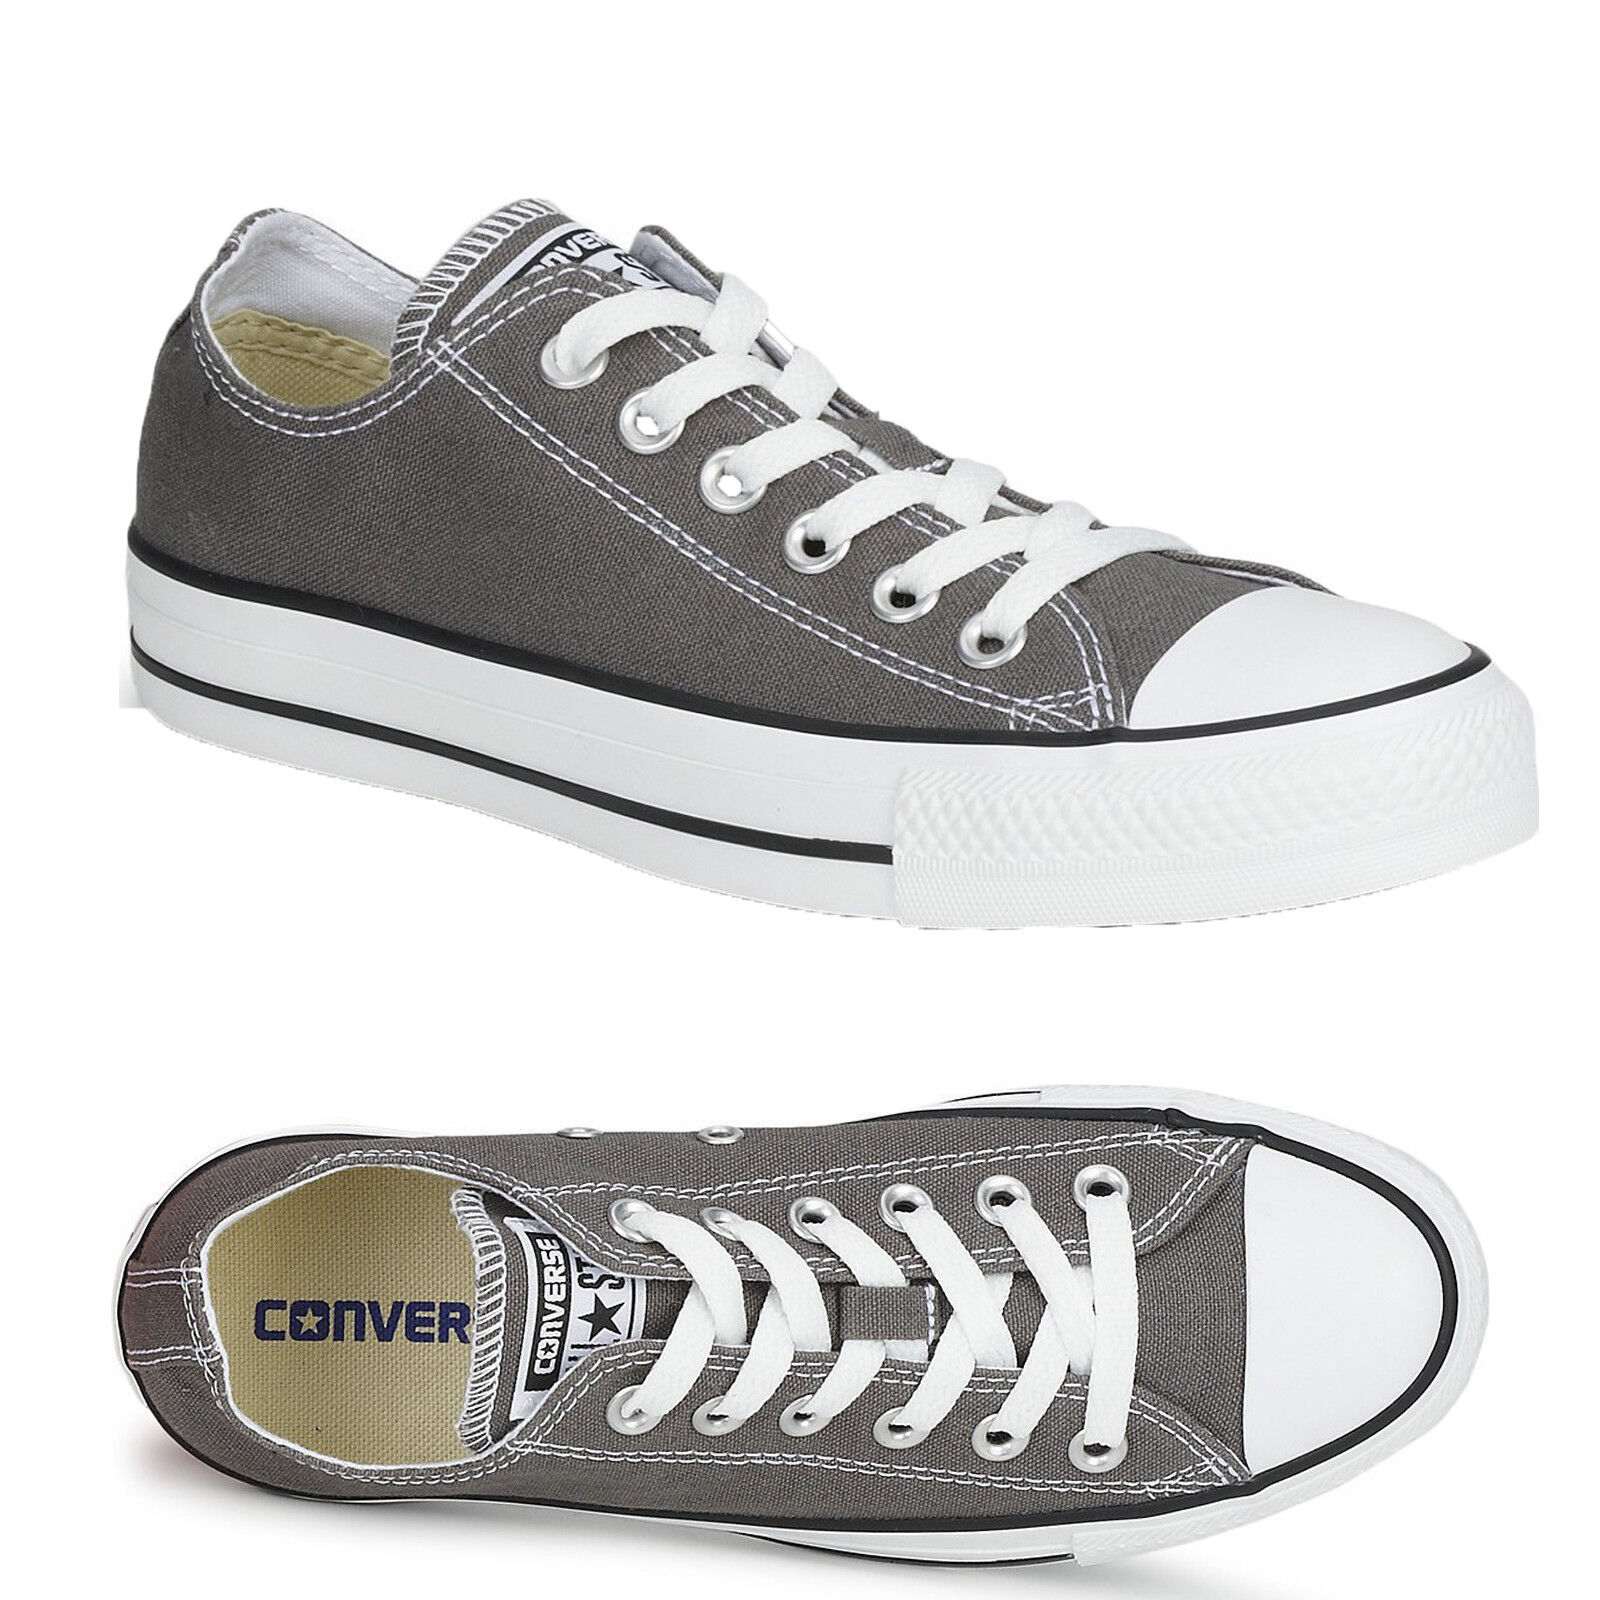 LADIES Uomo Donna UNISEX GREY CONVERSE CHUCK ALL STARS OX LO CHUCK CONVERSE TAYLORS ALL SIZE b36e42